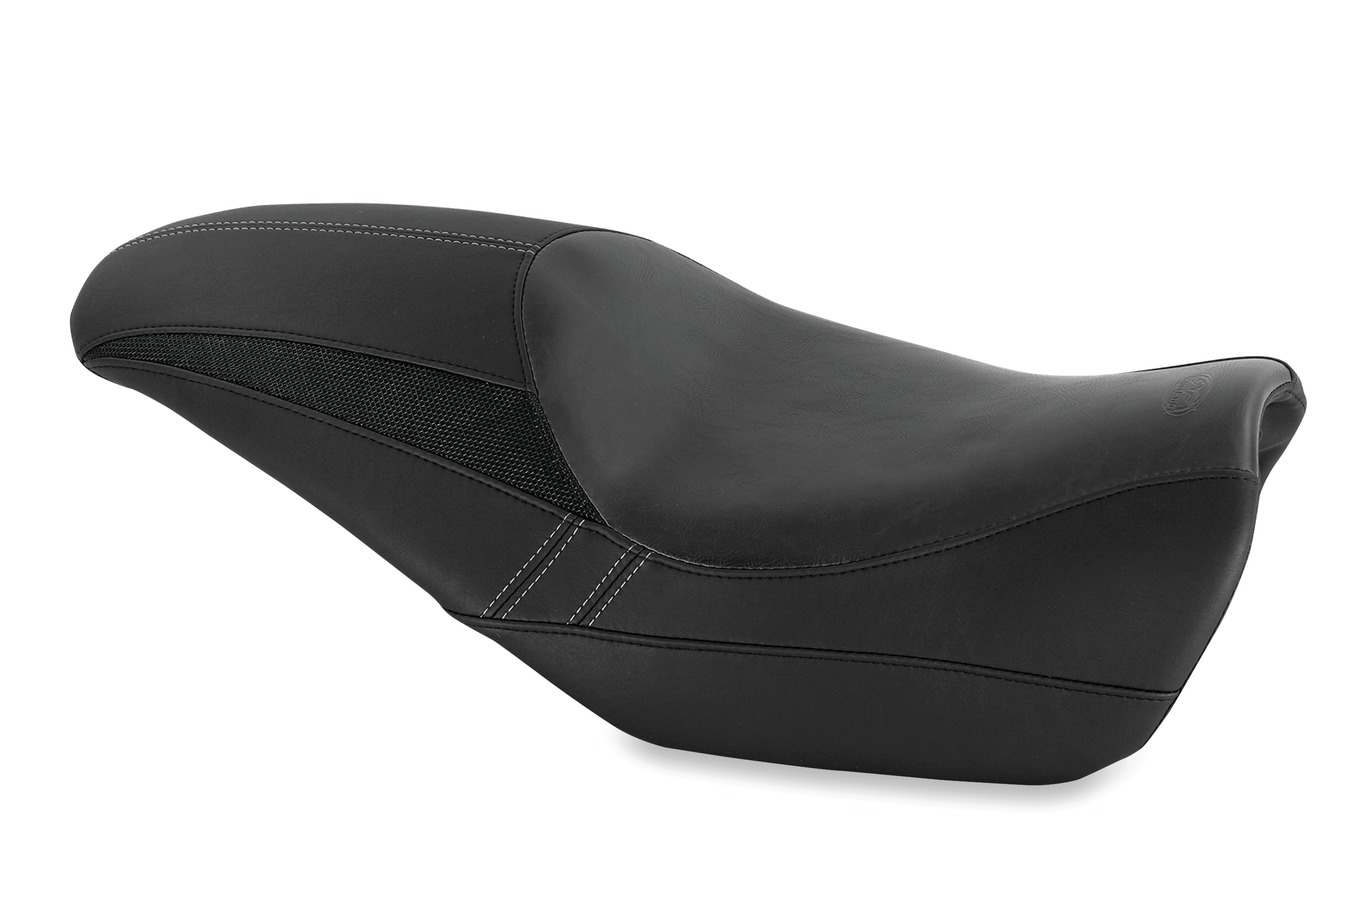 Fastback™ One-Piece Seat for Harley-Davidson Street 2015-